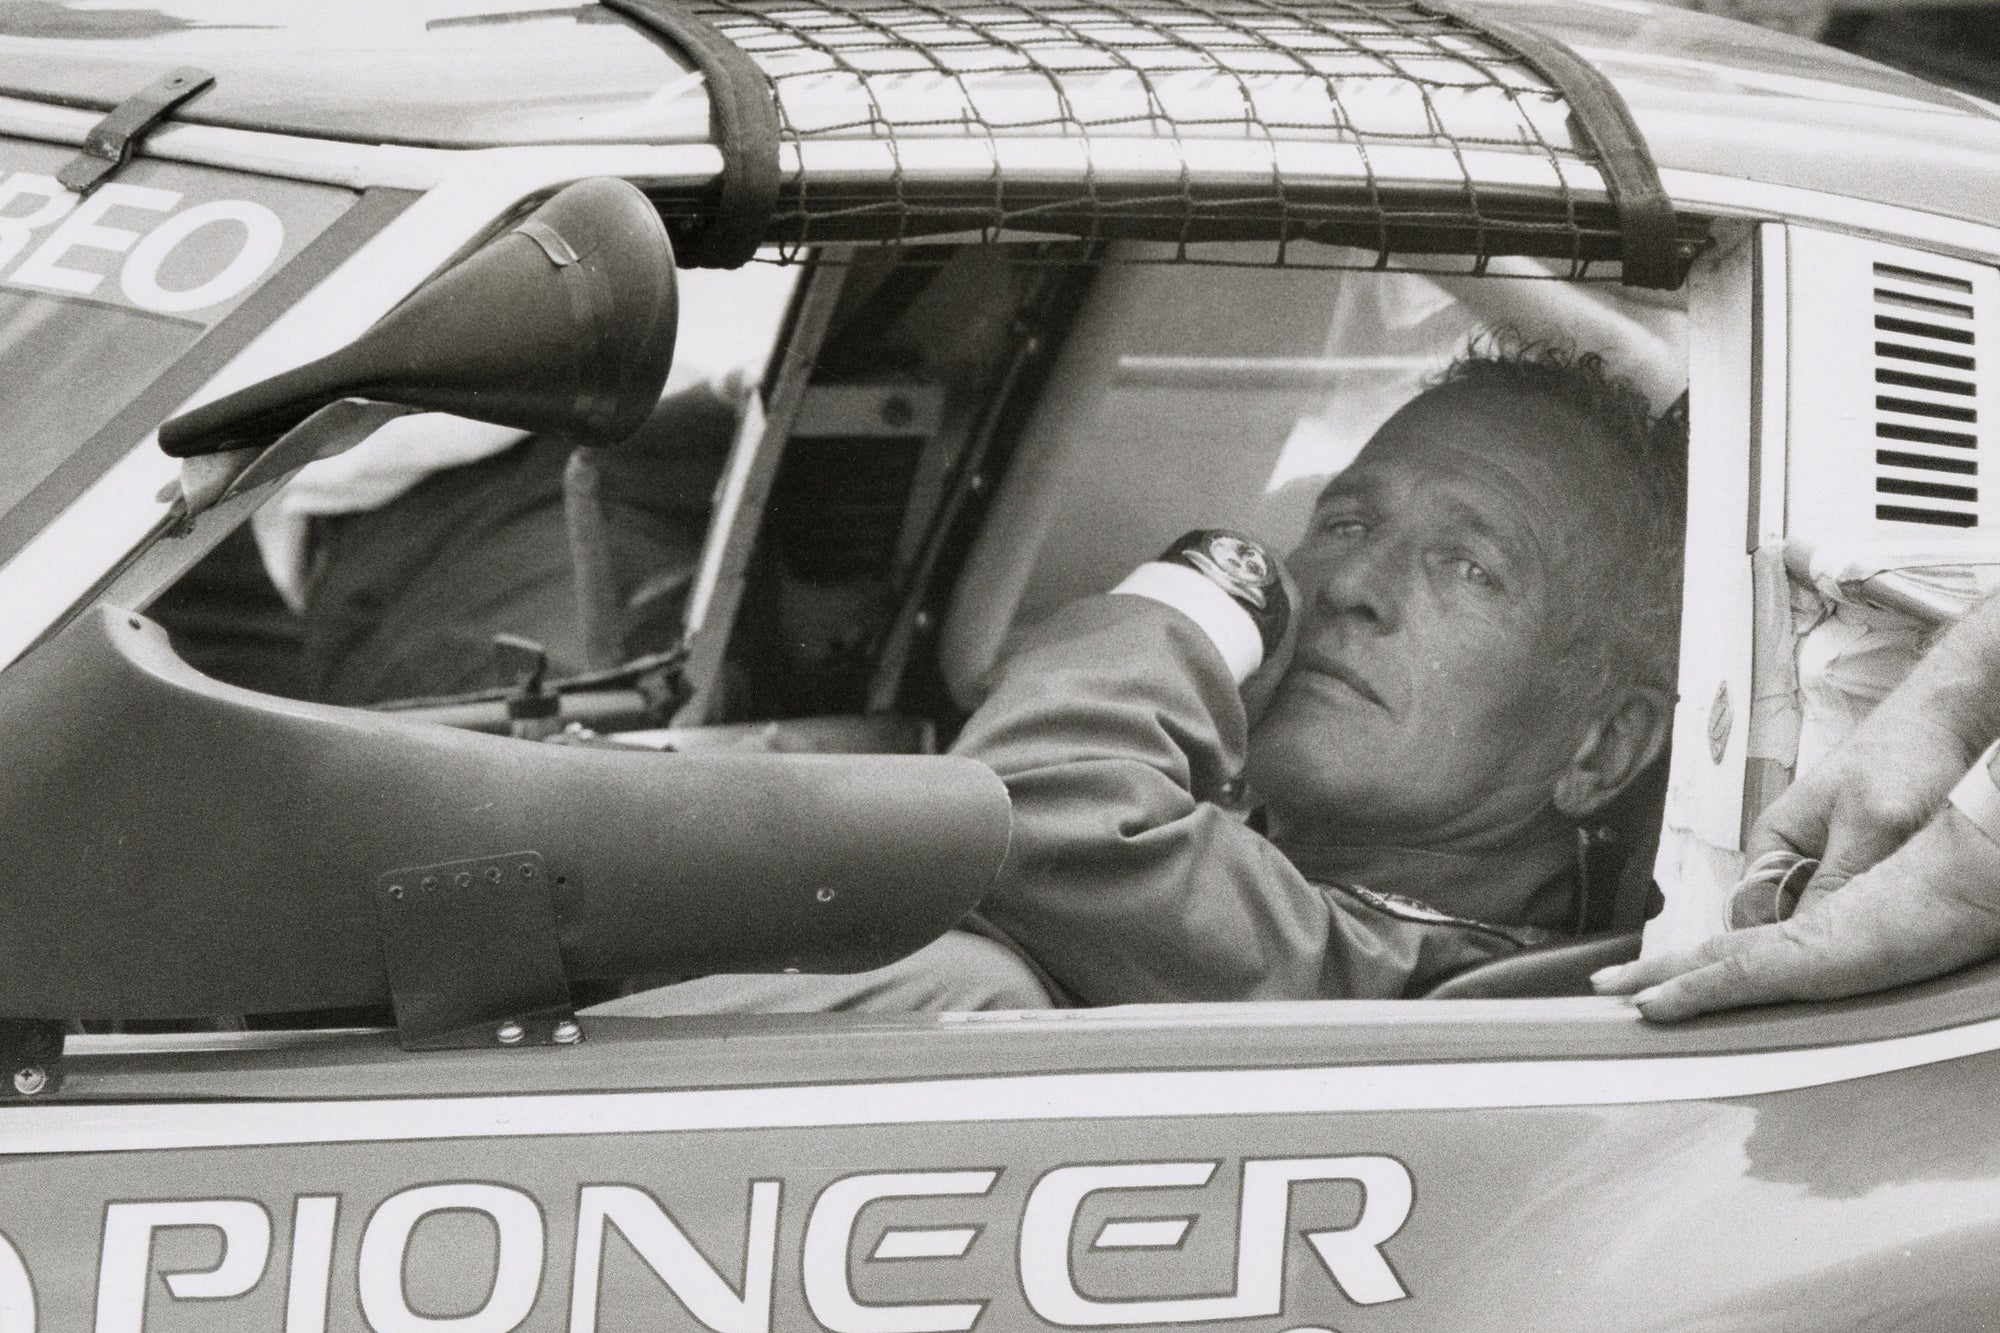 Paul Newman Daytona on the owner's wrist during a race